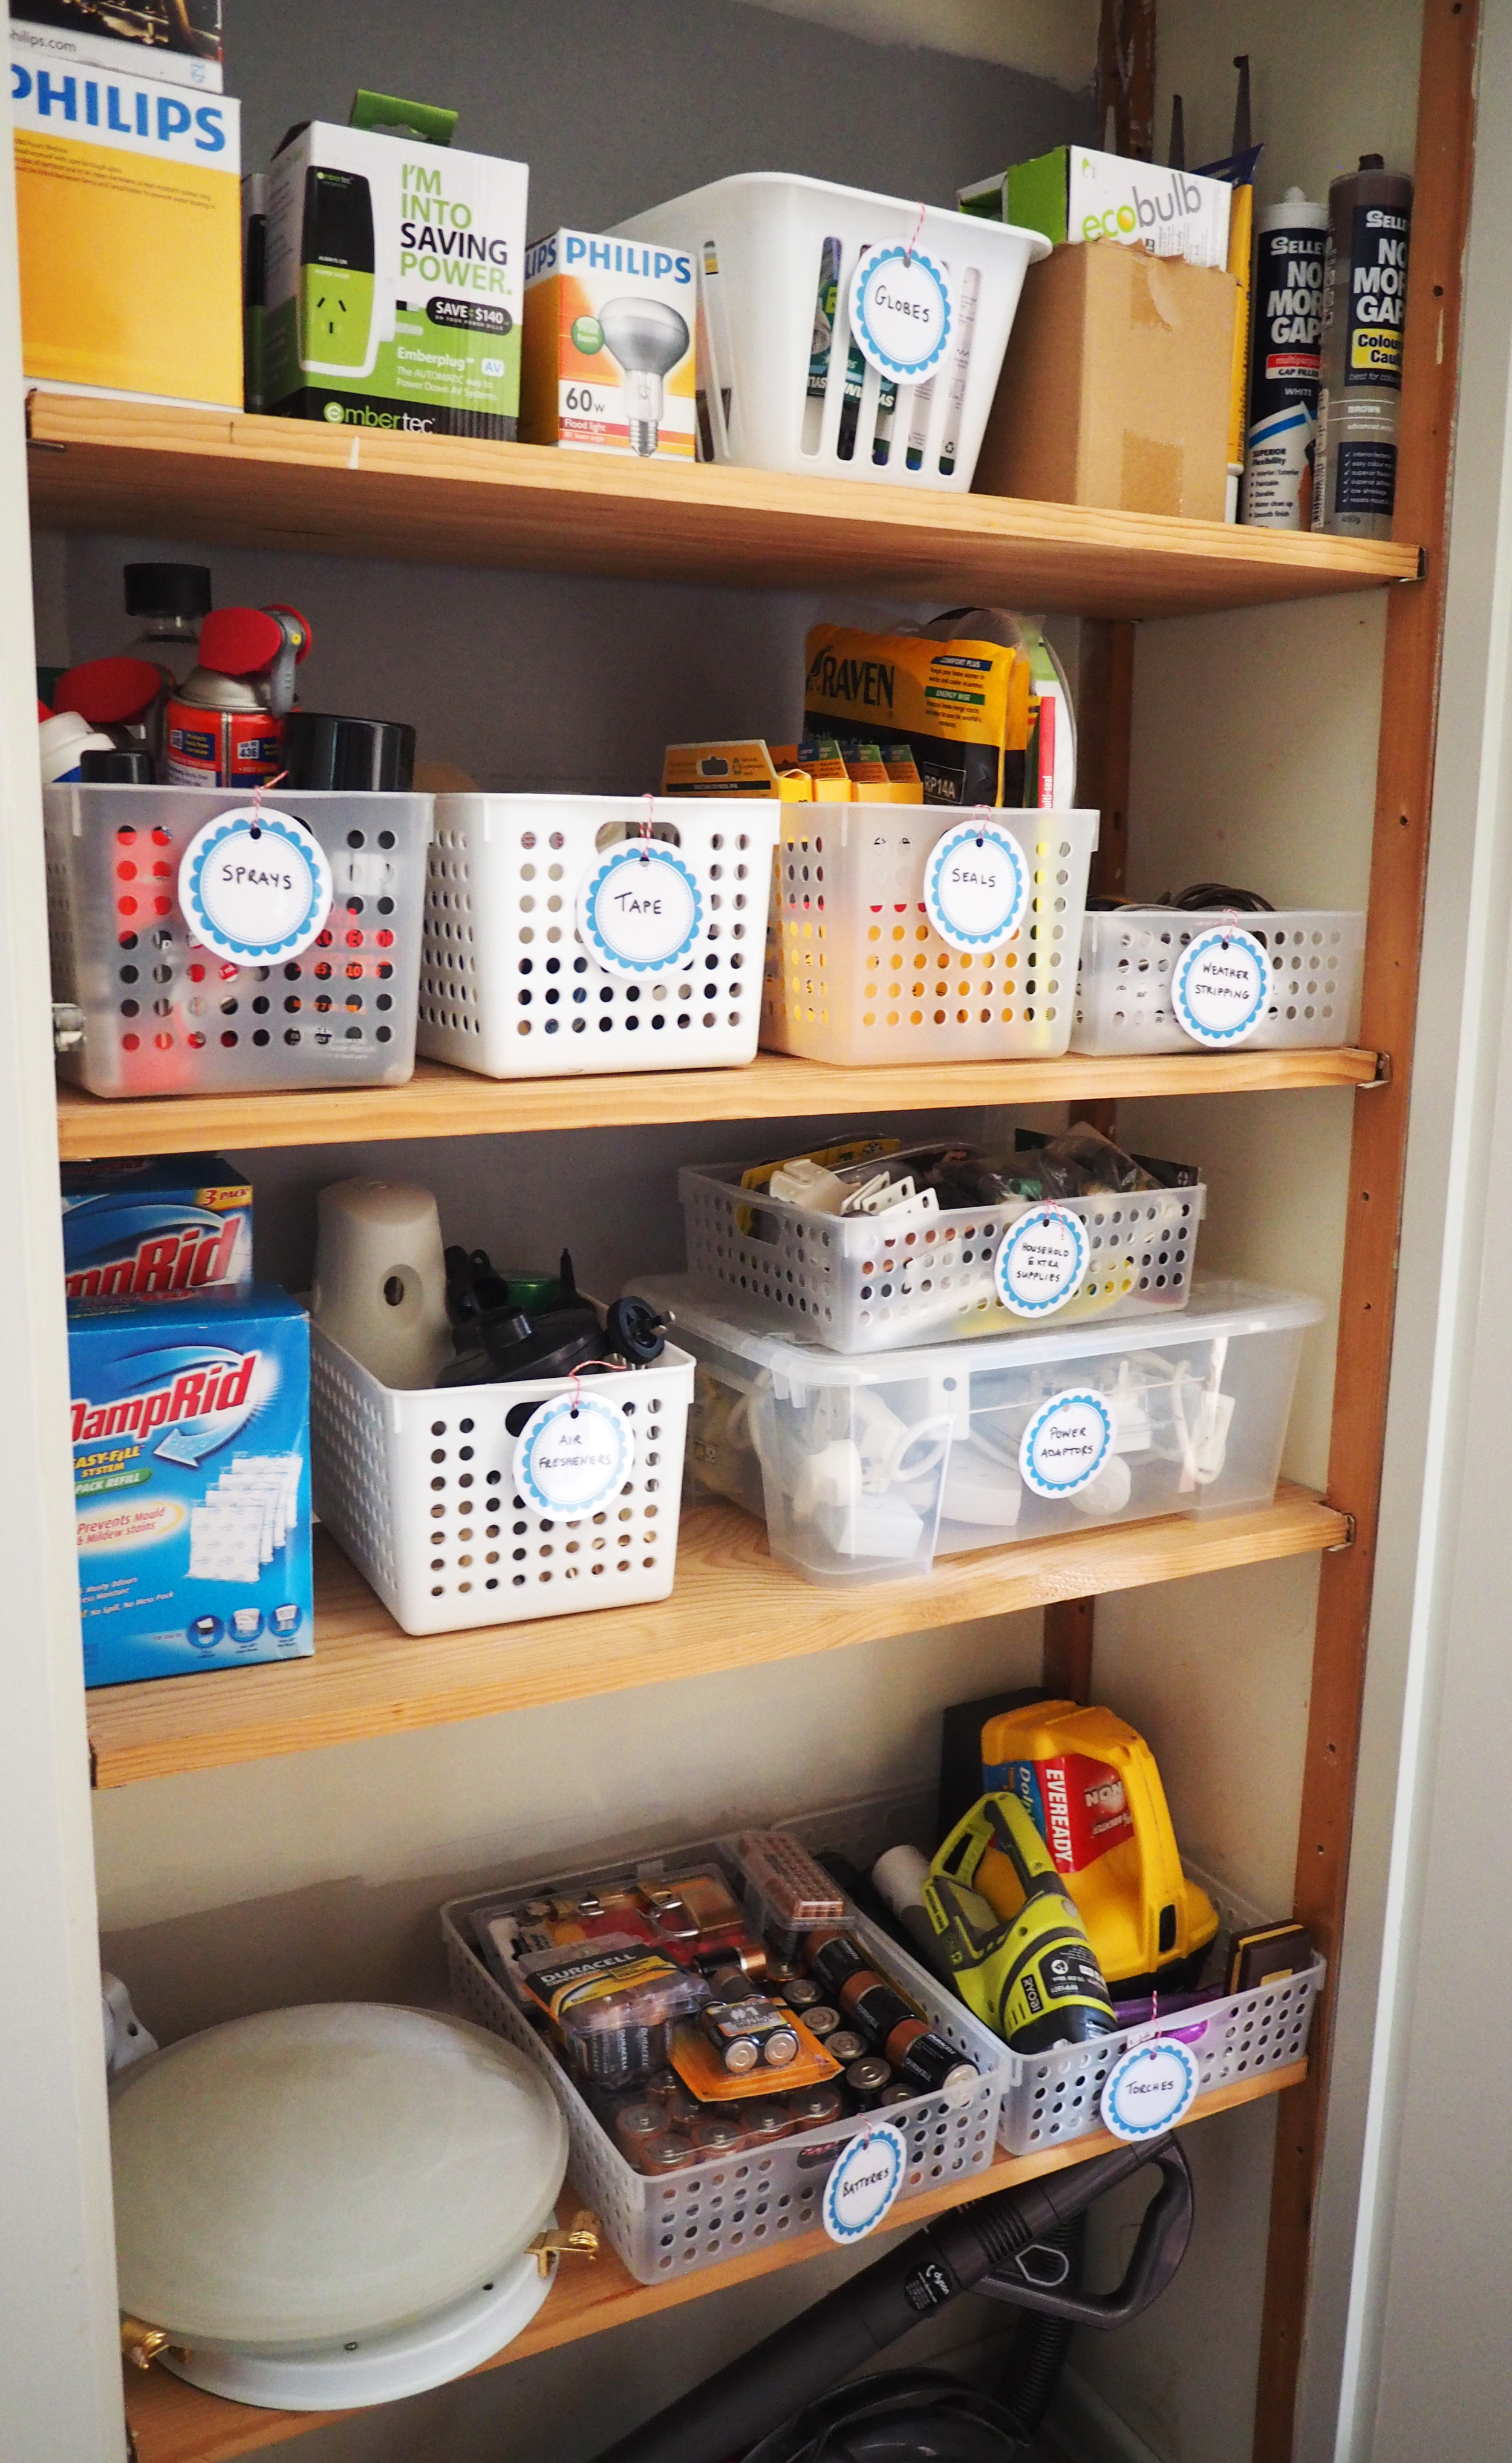 Storage cupboard organised using open baskets with labels